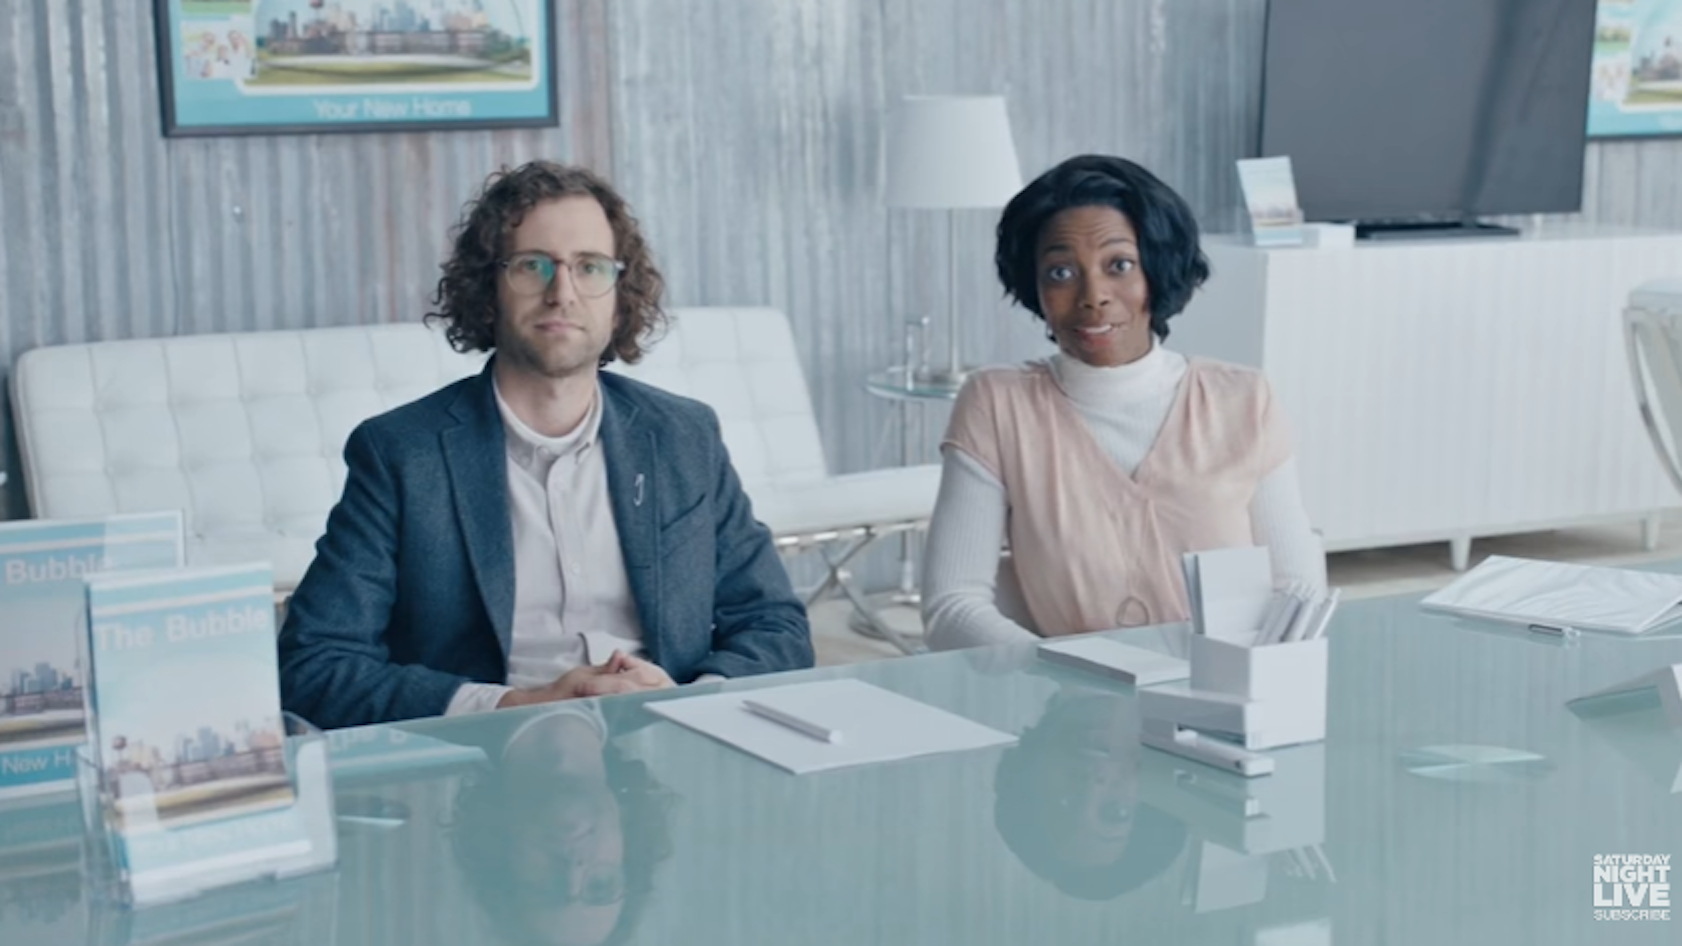 Kyle Mooney and Sasheer Zamata promise the Bubble will be a safe place for those who don't want to live in Trump's America.